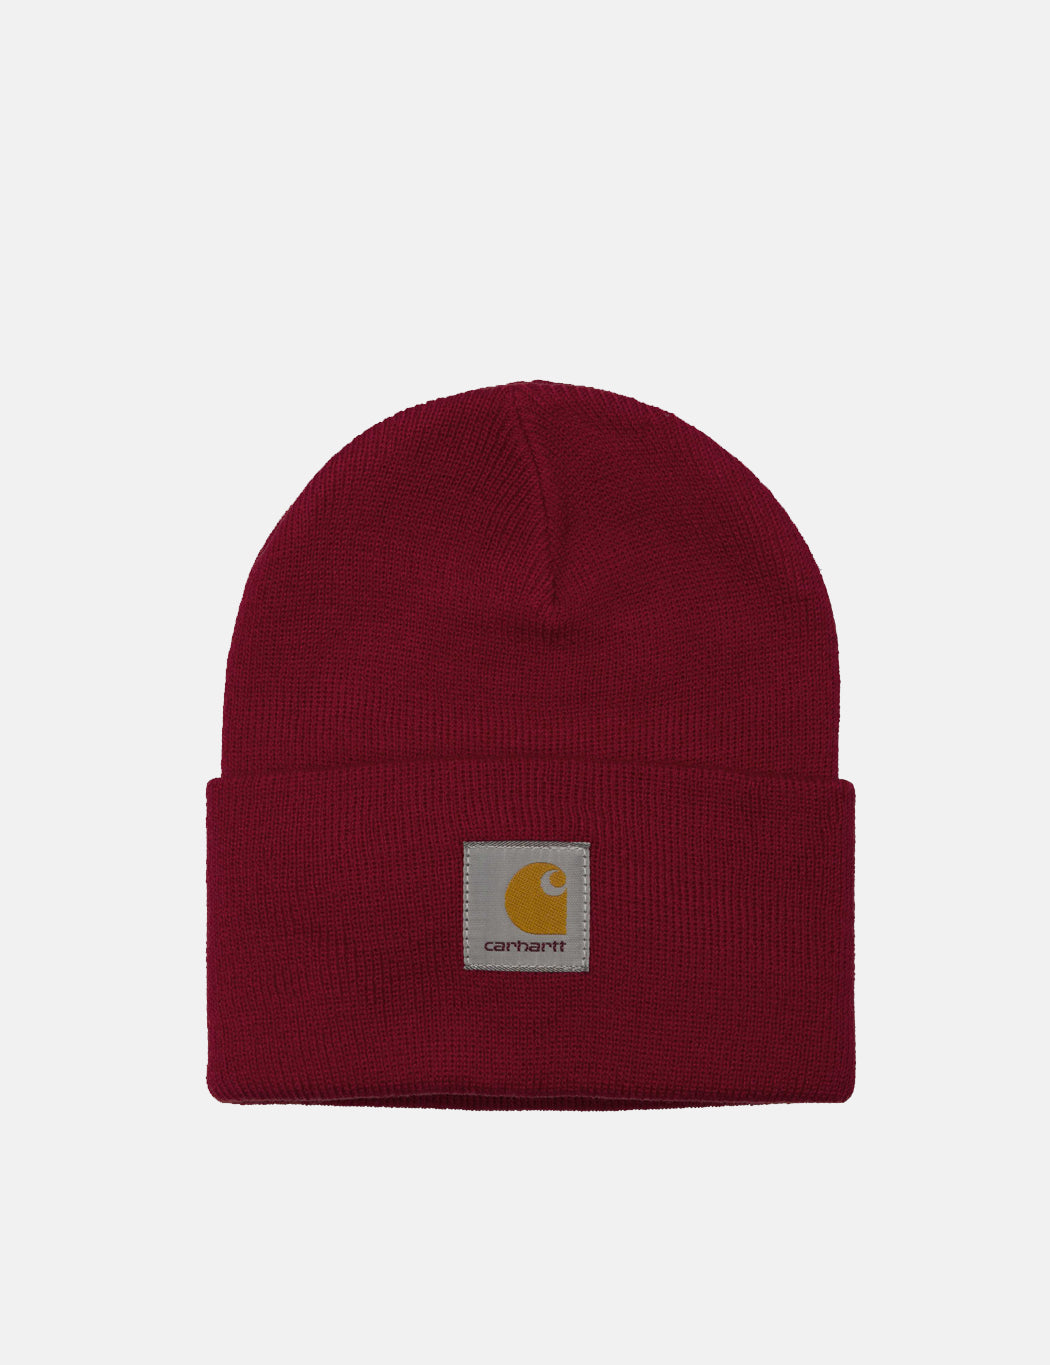 Carhartt Watch Cap Beanie Hat - Blast Red  d0c79fb11fd